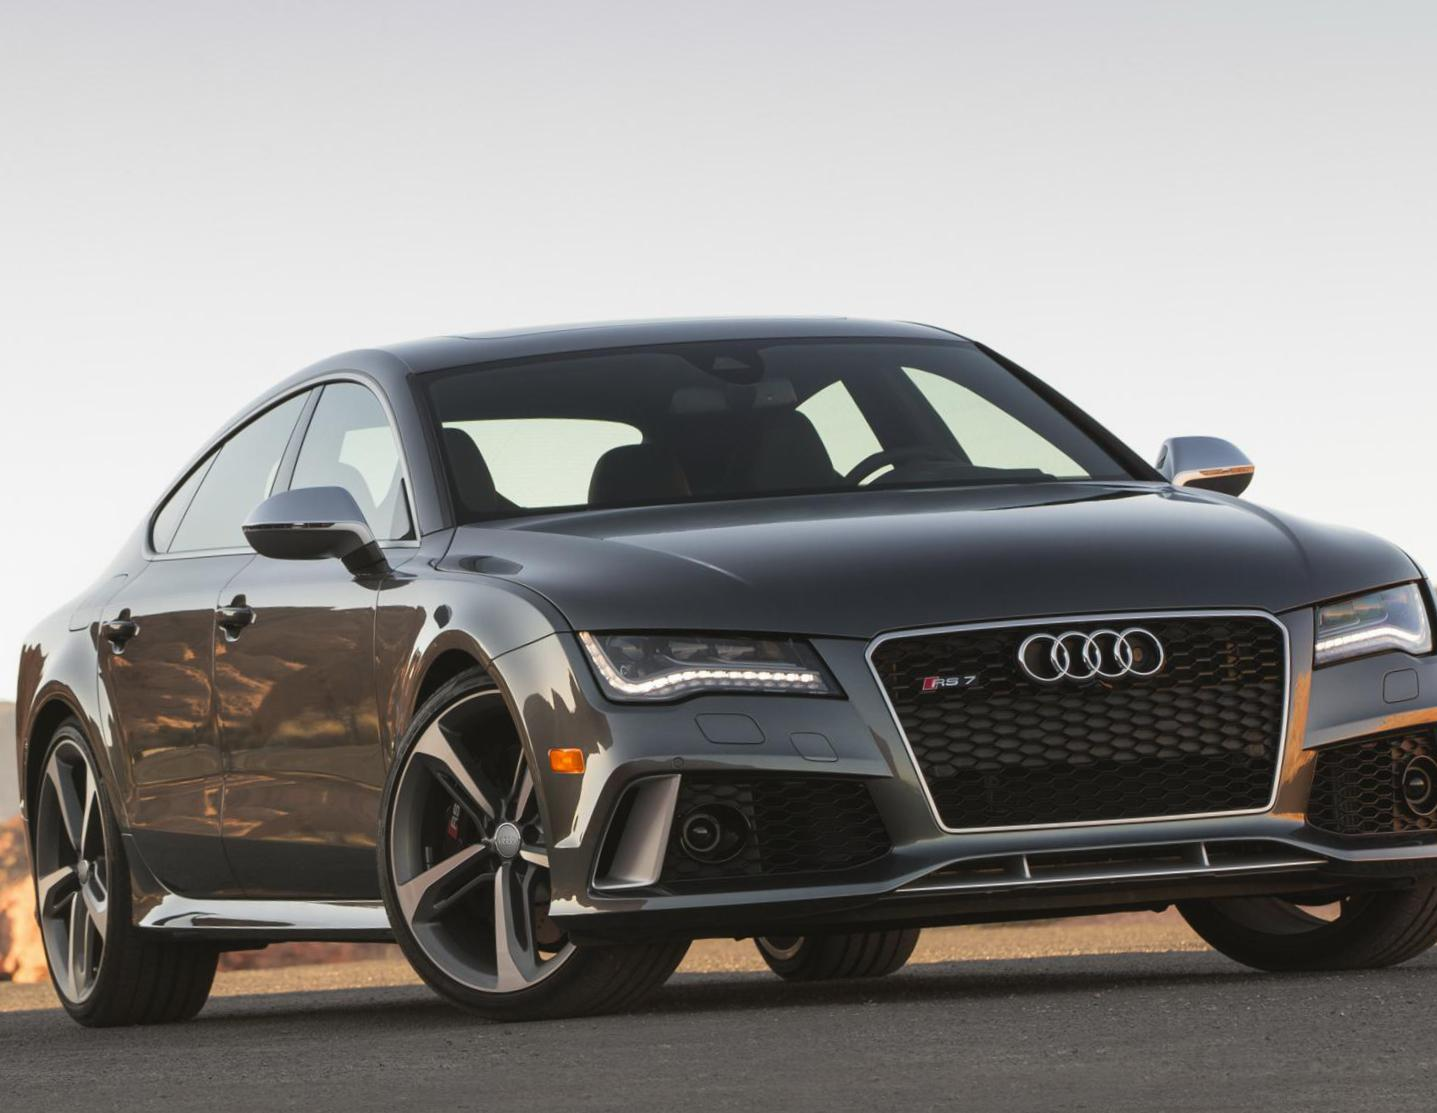 Audi RS7 Sportback Specifications 2014